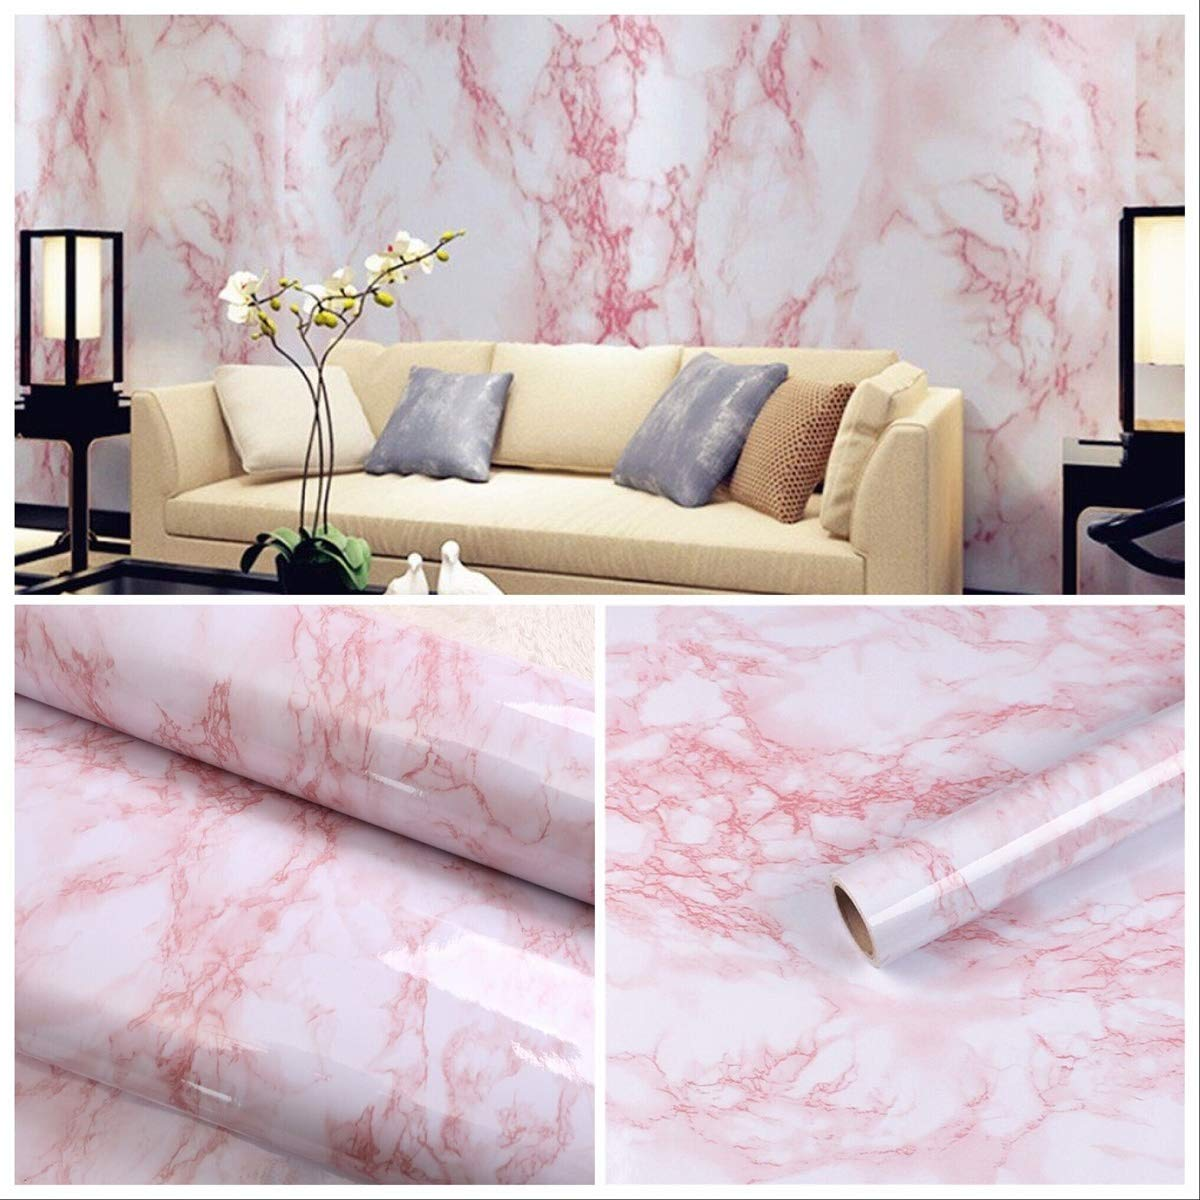 Marble Contact Paper Peel and Stick Tile backsplash Peel and Stick Contact Paper for countertops Marble Sticker Paper Marble Liner Contact Paper Decorative Granite Wallpaper 11.8 x78.7 practicalWs 123465234666